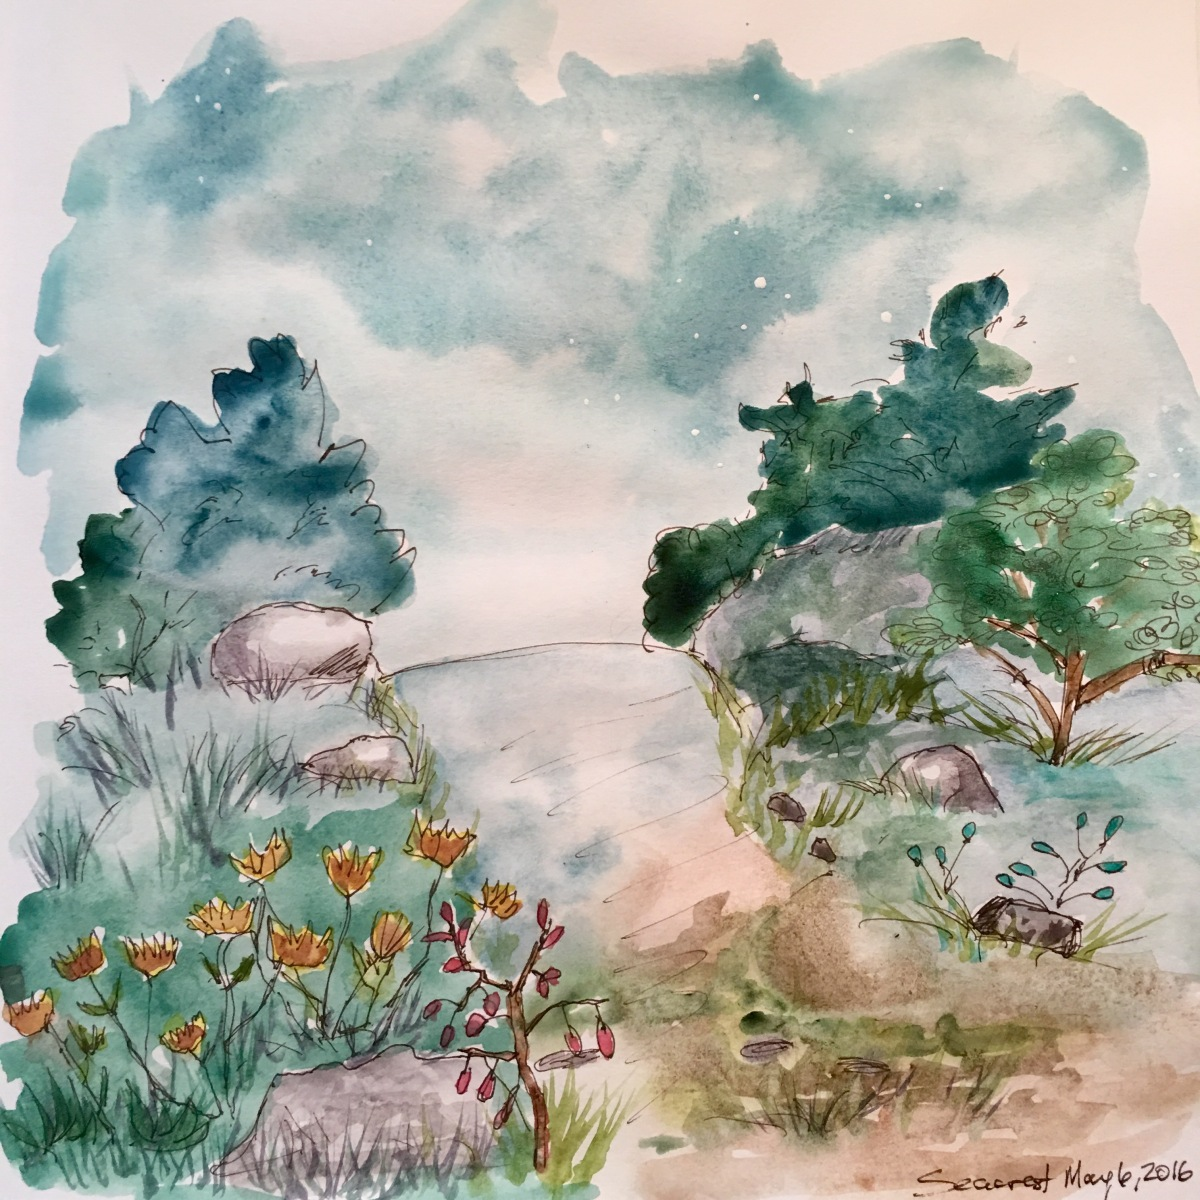 Painting using Daniel Smith Primatek watercolors in a Seawhite journal.